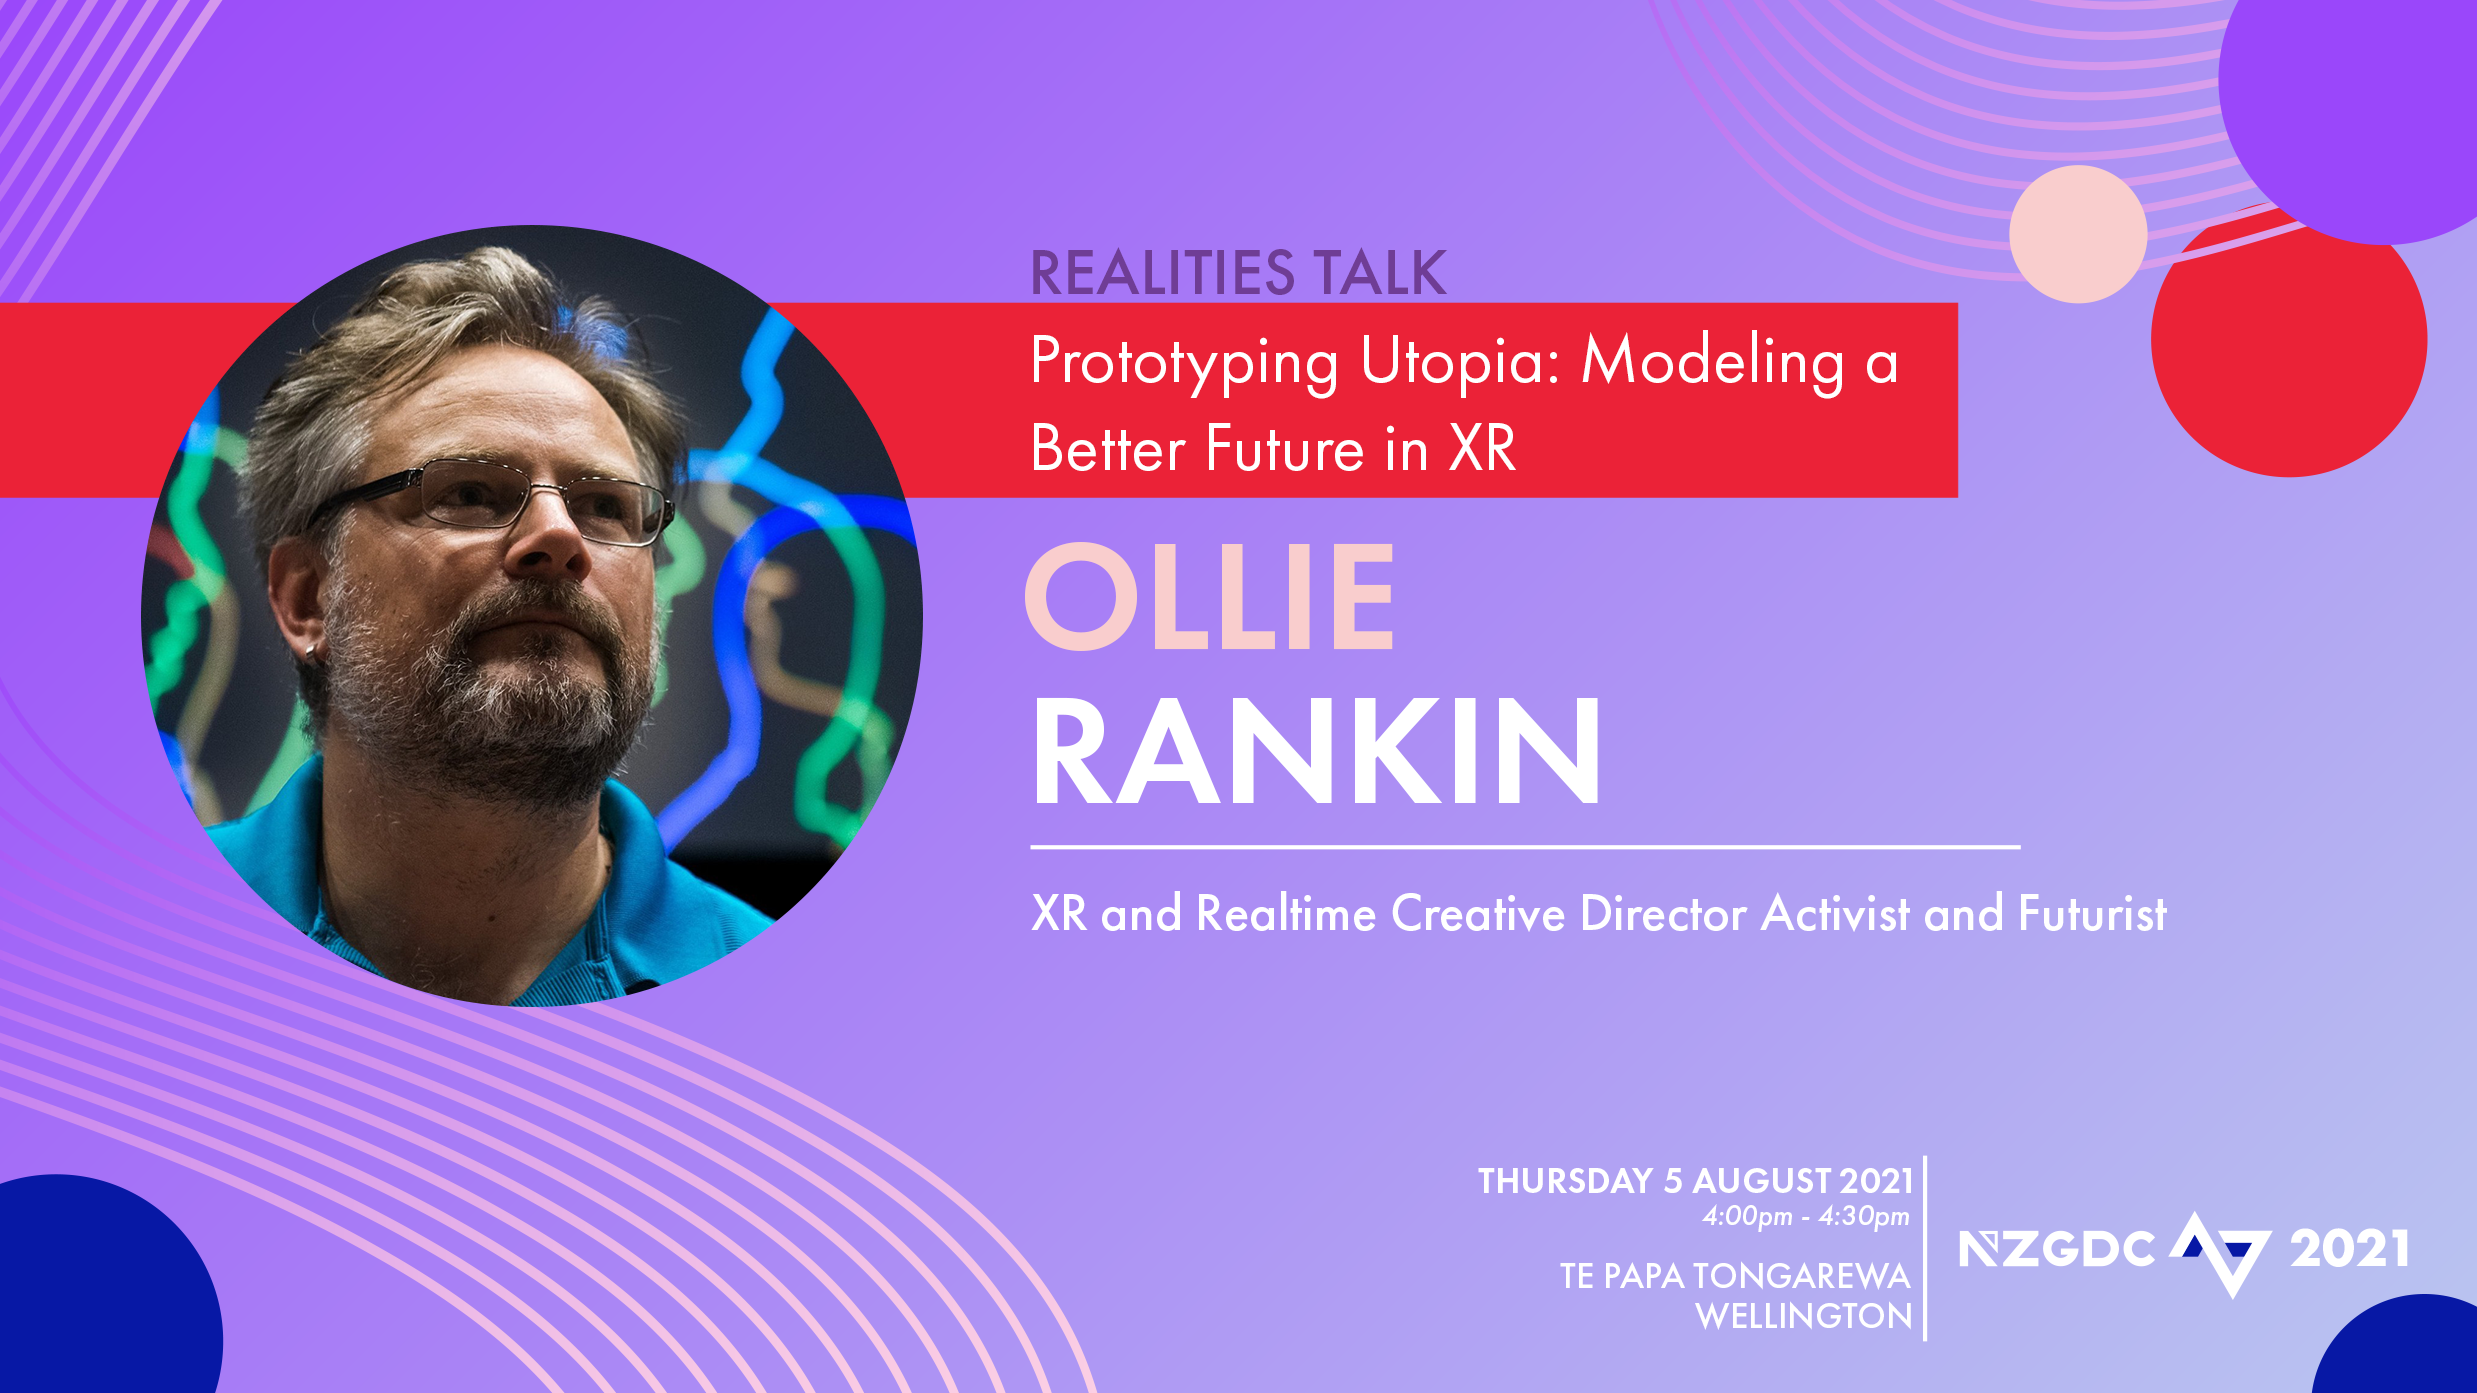 Prototyping Utopia: Modeling a Better Future in XR